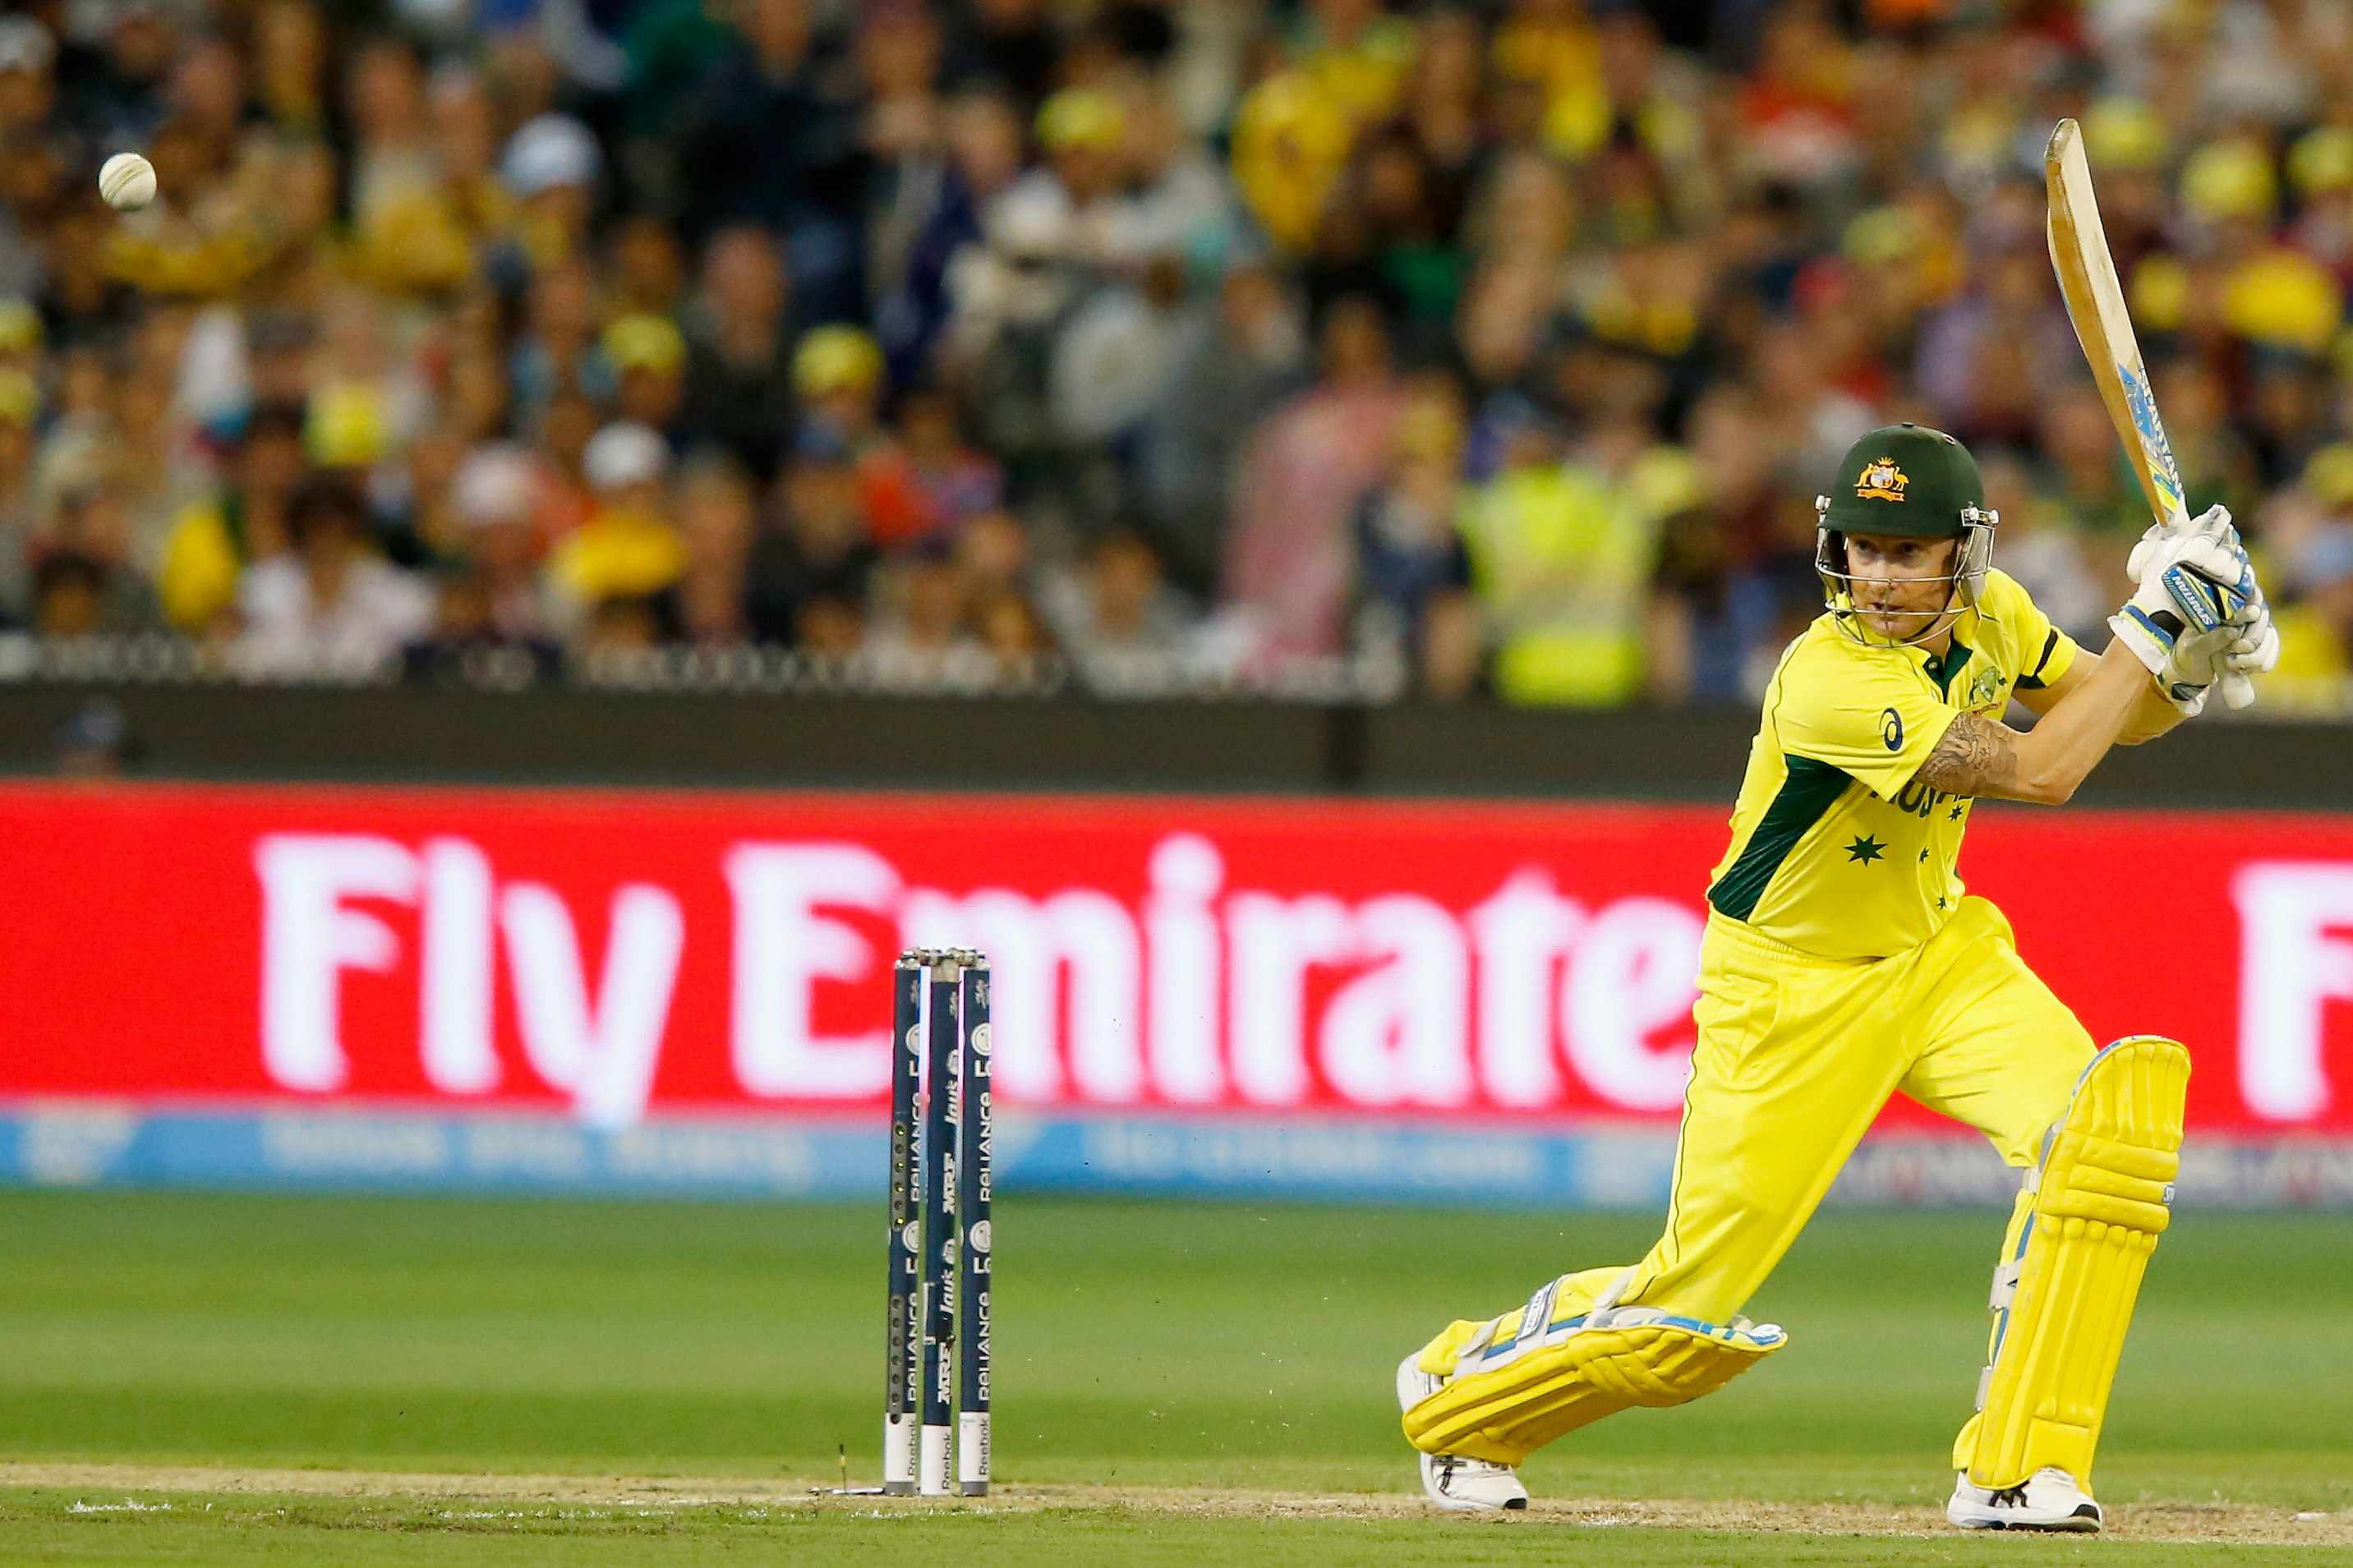 MELBOURNE, AUSTRALIA - MARCH 29:  Michael Clarke of Australia bats during the 2015 ICC Cricket World Cup final match between Australia and New Zealand at Melbourne Cricket Ground on March 29, 2015 in Melbourne, Australia.  (Photo by Darrian Traynor/Getty Images)